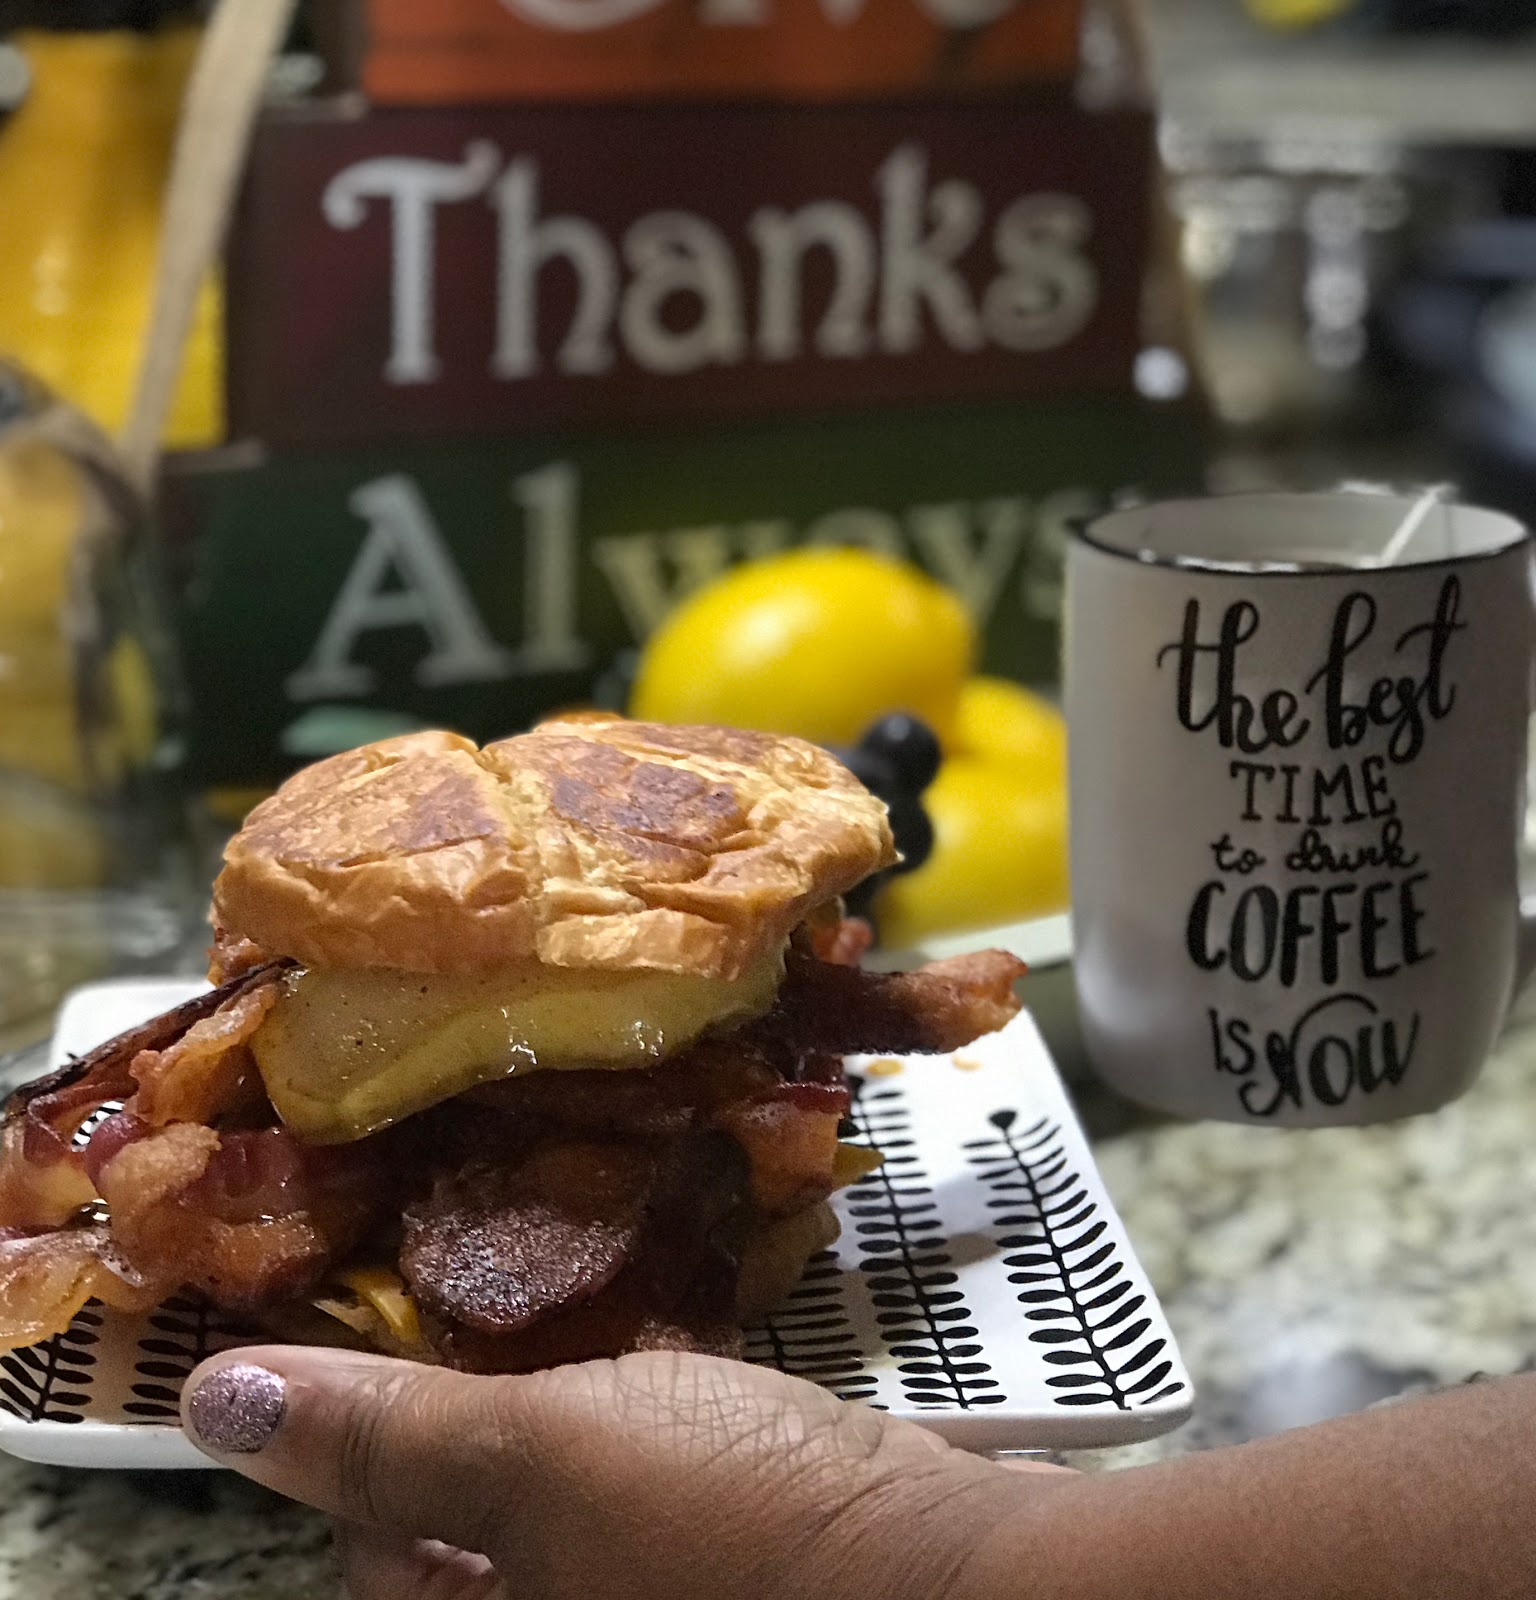 Tangie Bell is sharing the completed sammich: Stacked with lots of bacon, egg, cheese and pears in a sweet sauce